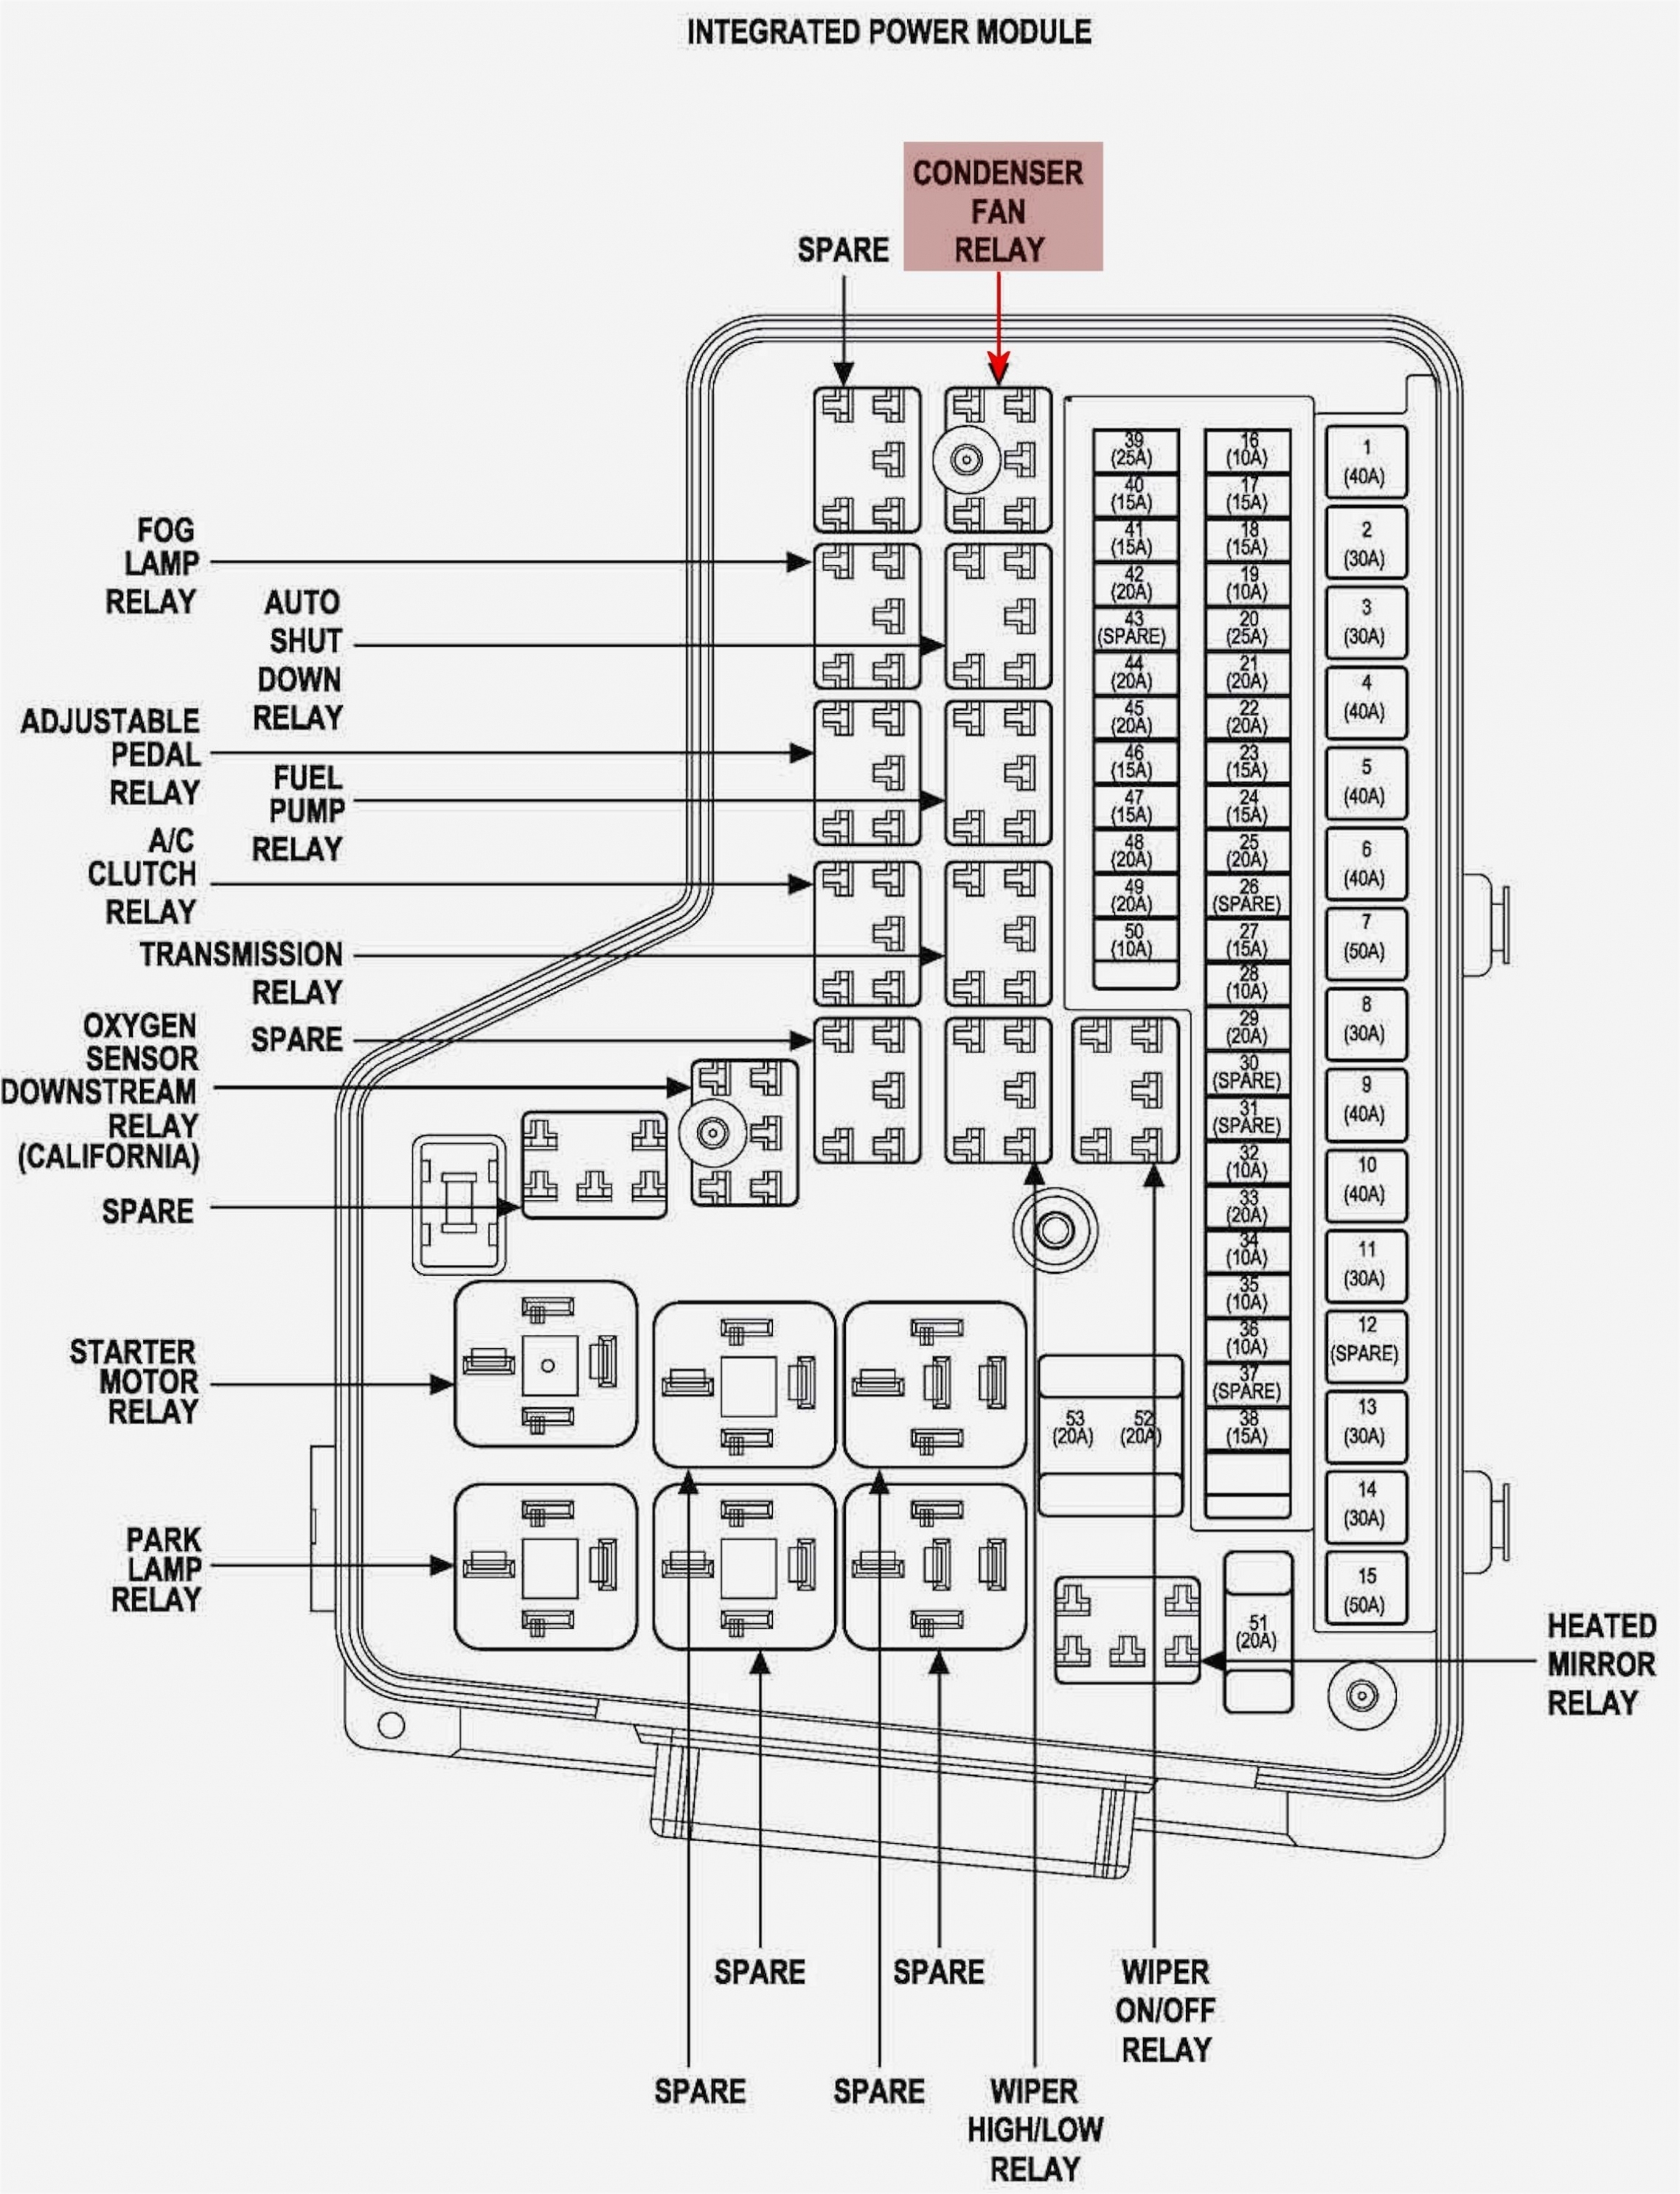 Strange Fuse Box Location 2004 Dodge Ram 1500 Wiring Diagram Wiring Cloud Hisonuggs Outletorg